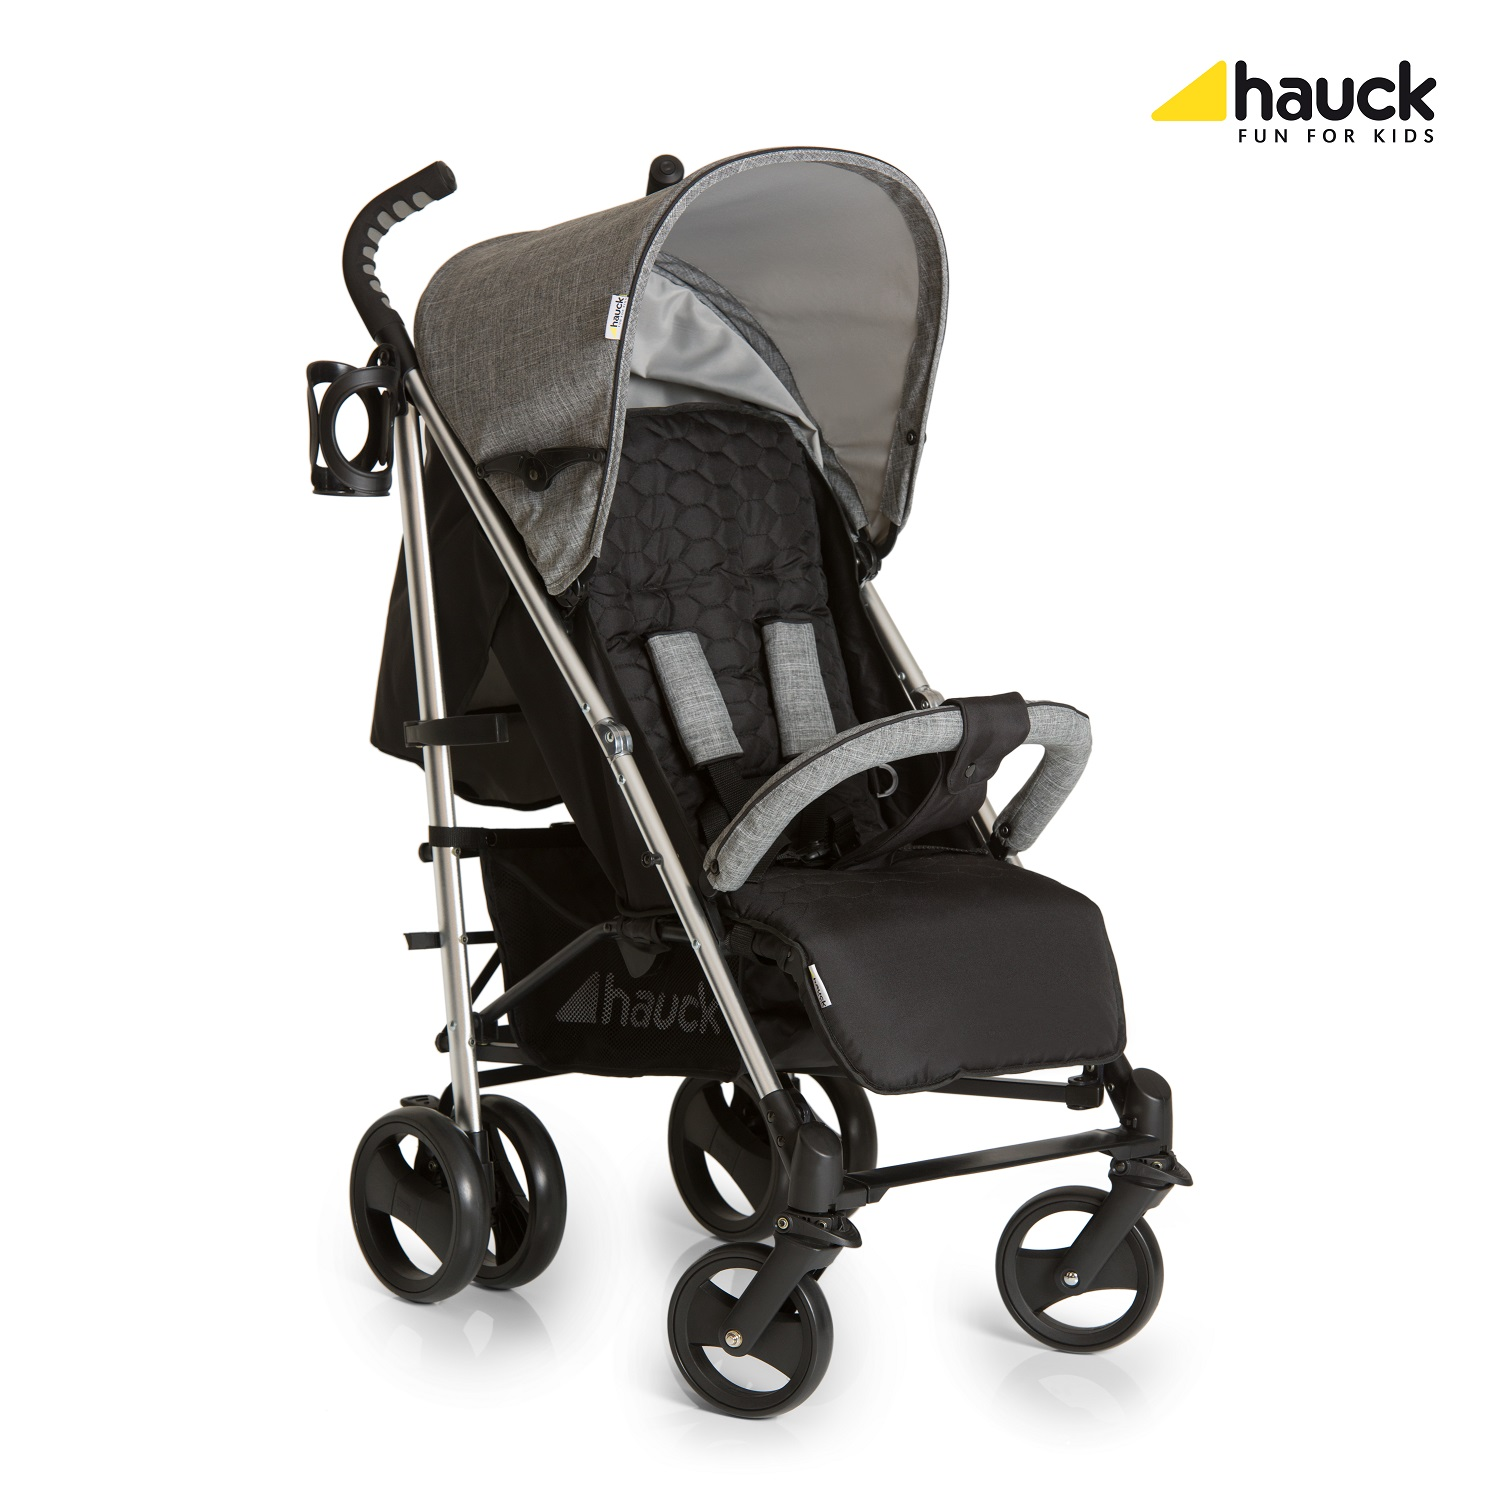 hauck buggy vegas 2018 buy at kidsroom strollers. Black Bedroom Furniture Sets. Home Design Ideas